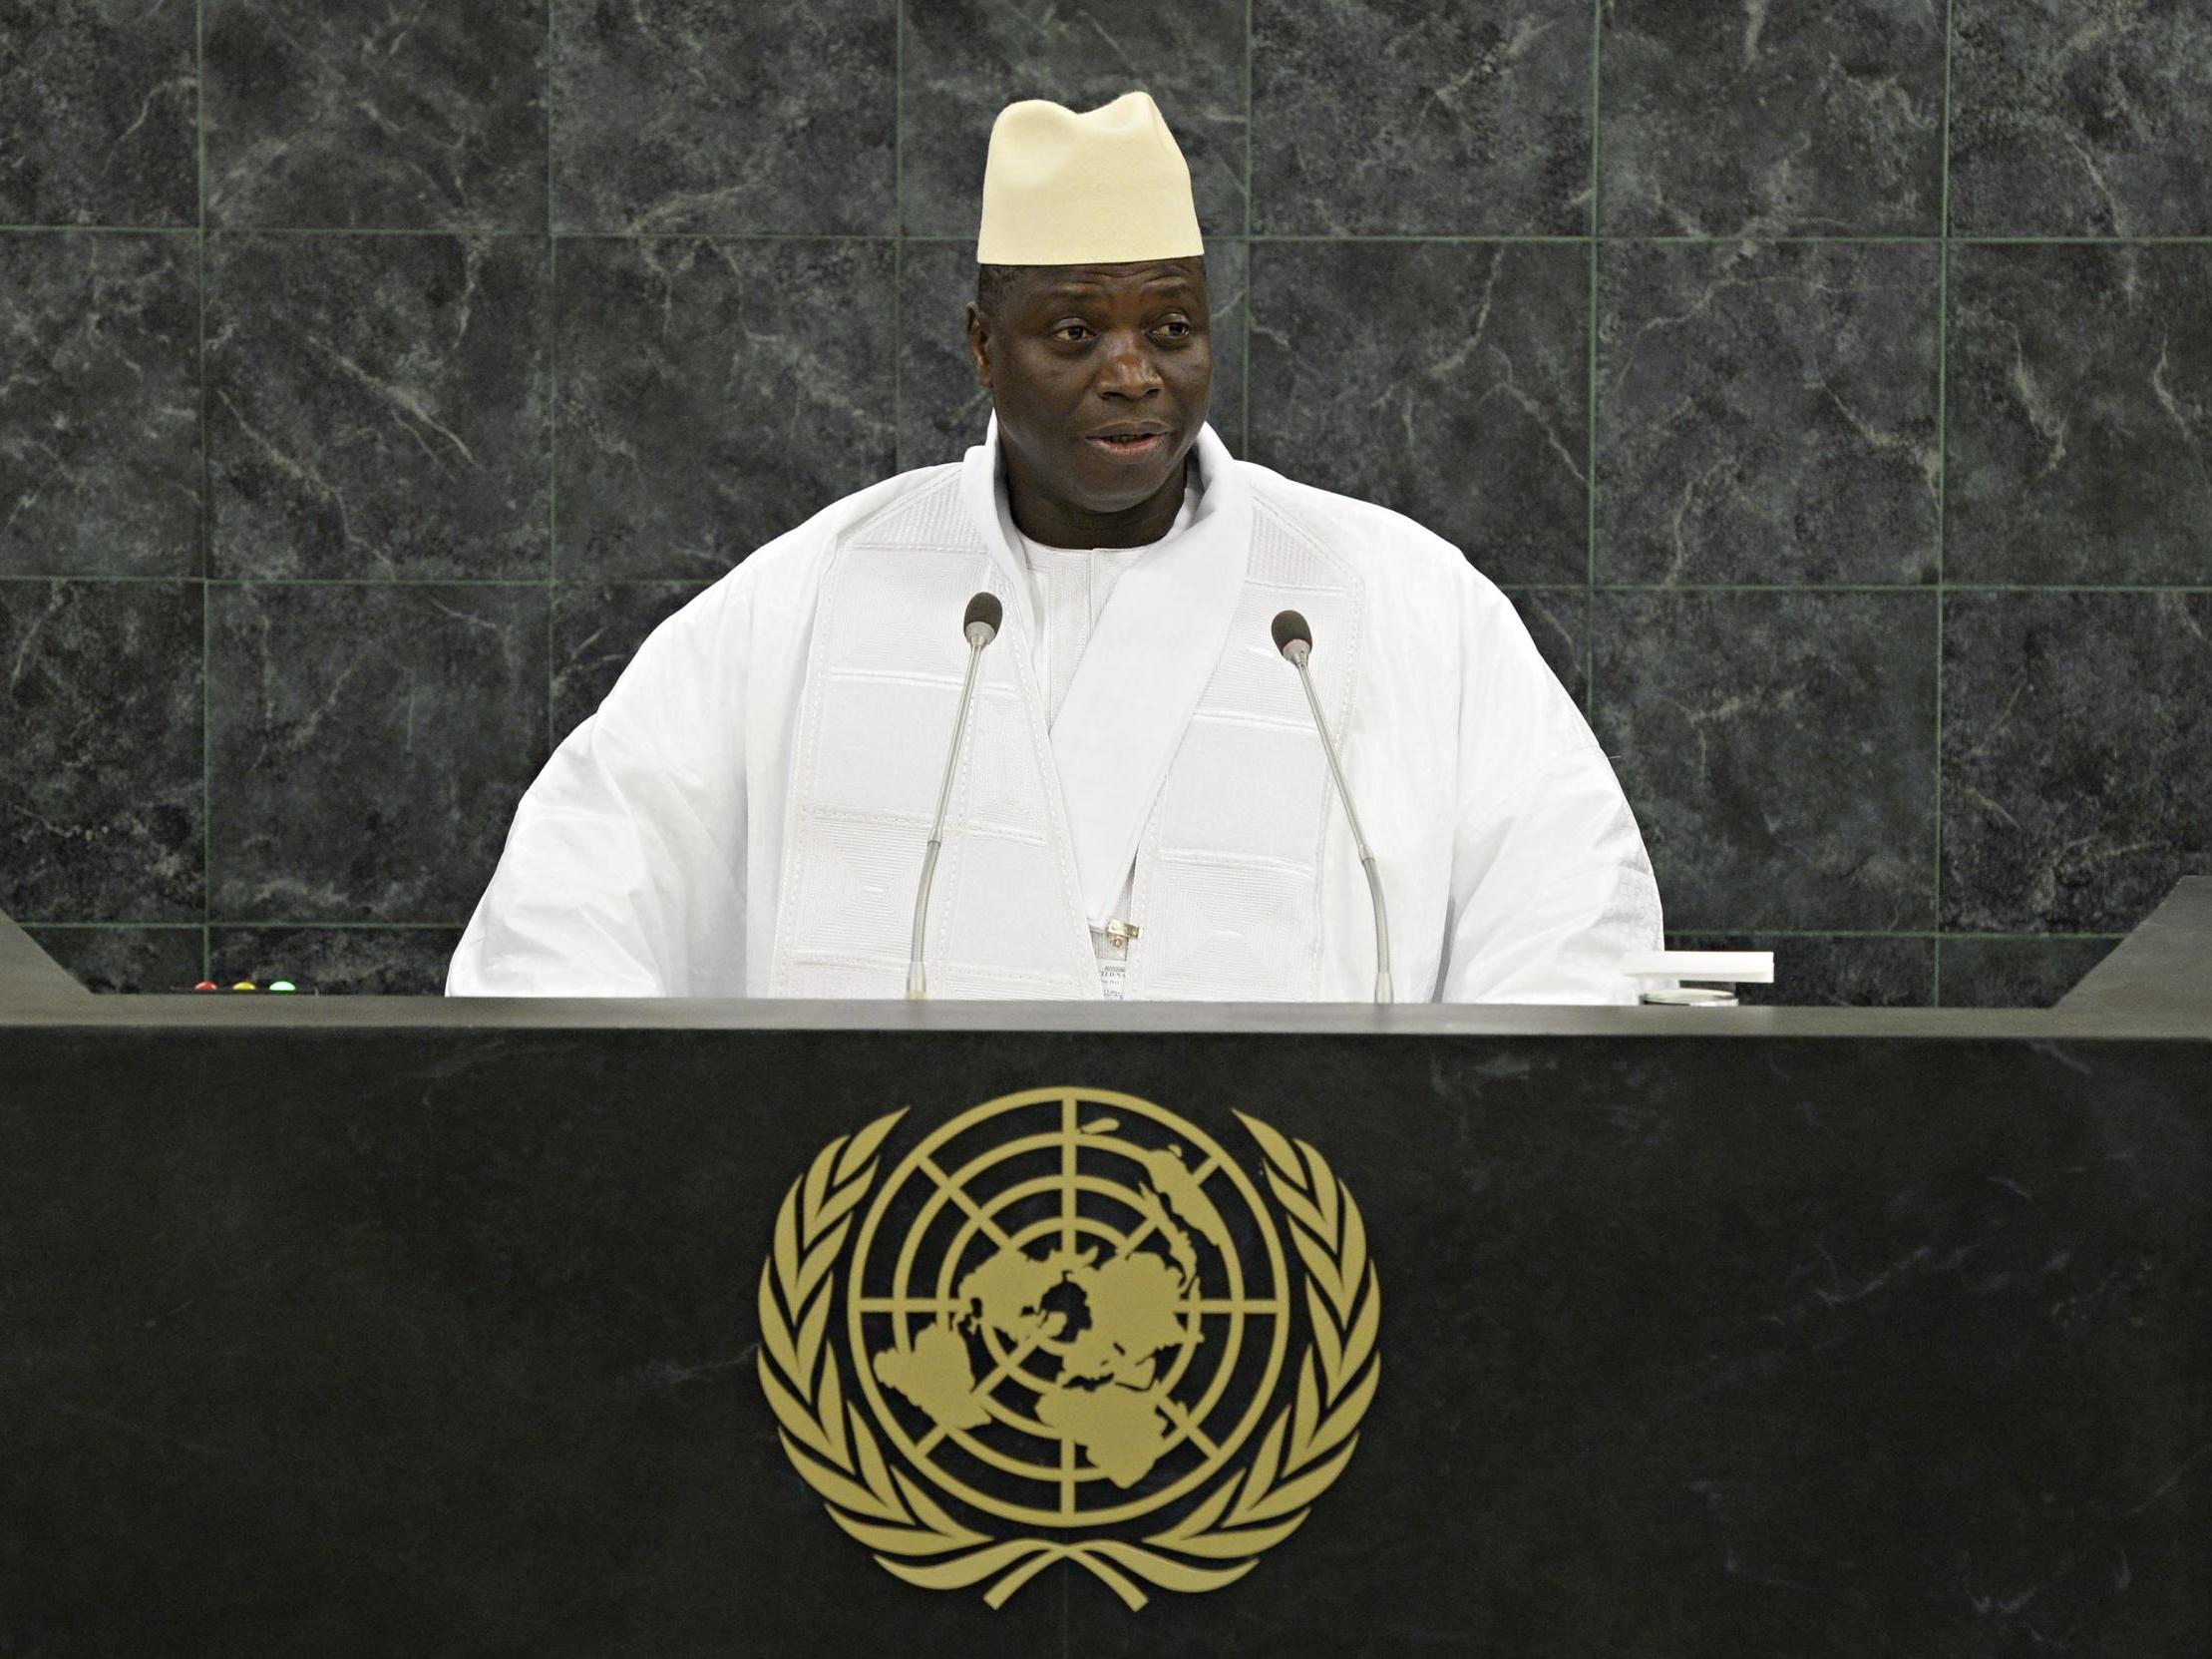 'Chopped to pieces': Former dictator's hitmen confess to murder and walk free in Gambia